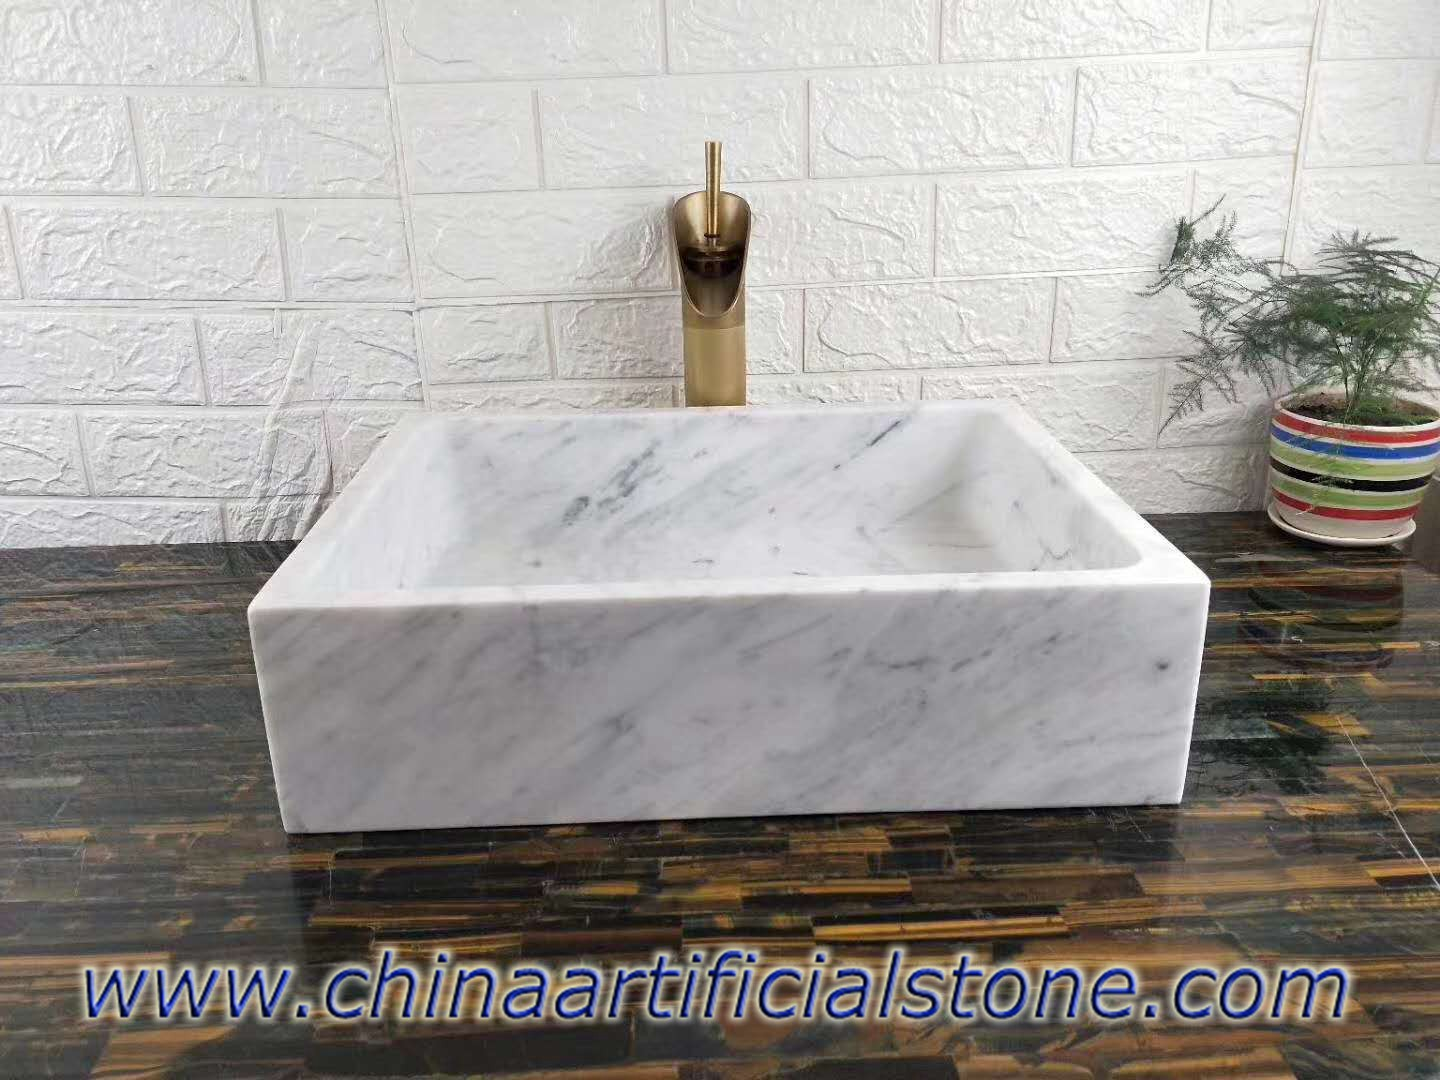 Carrara Mármol Blanco Retangle Fregadero 34x35x13cm